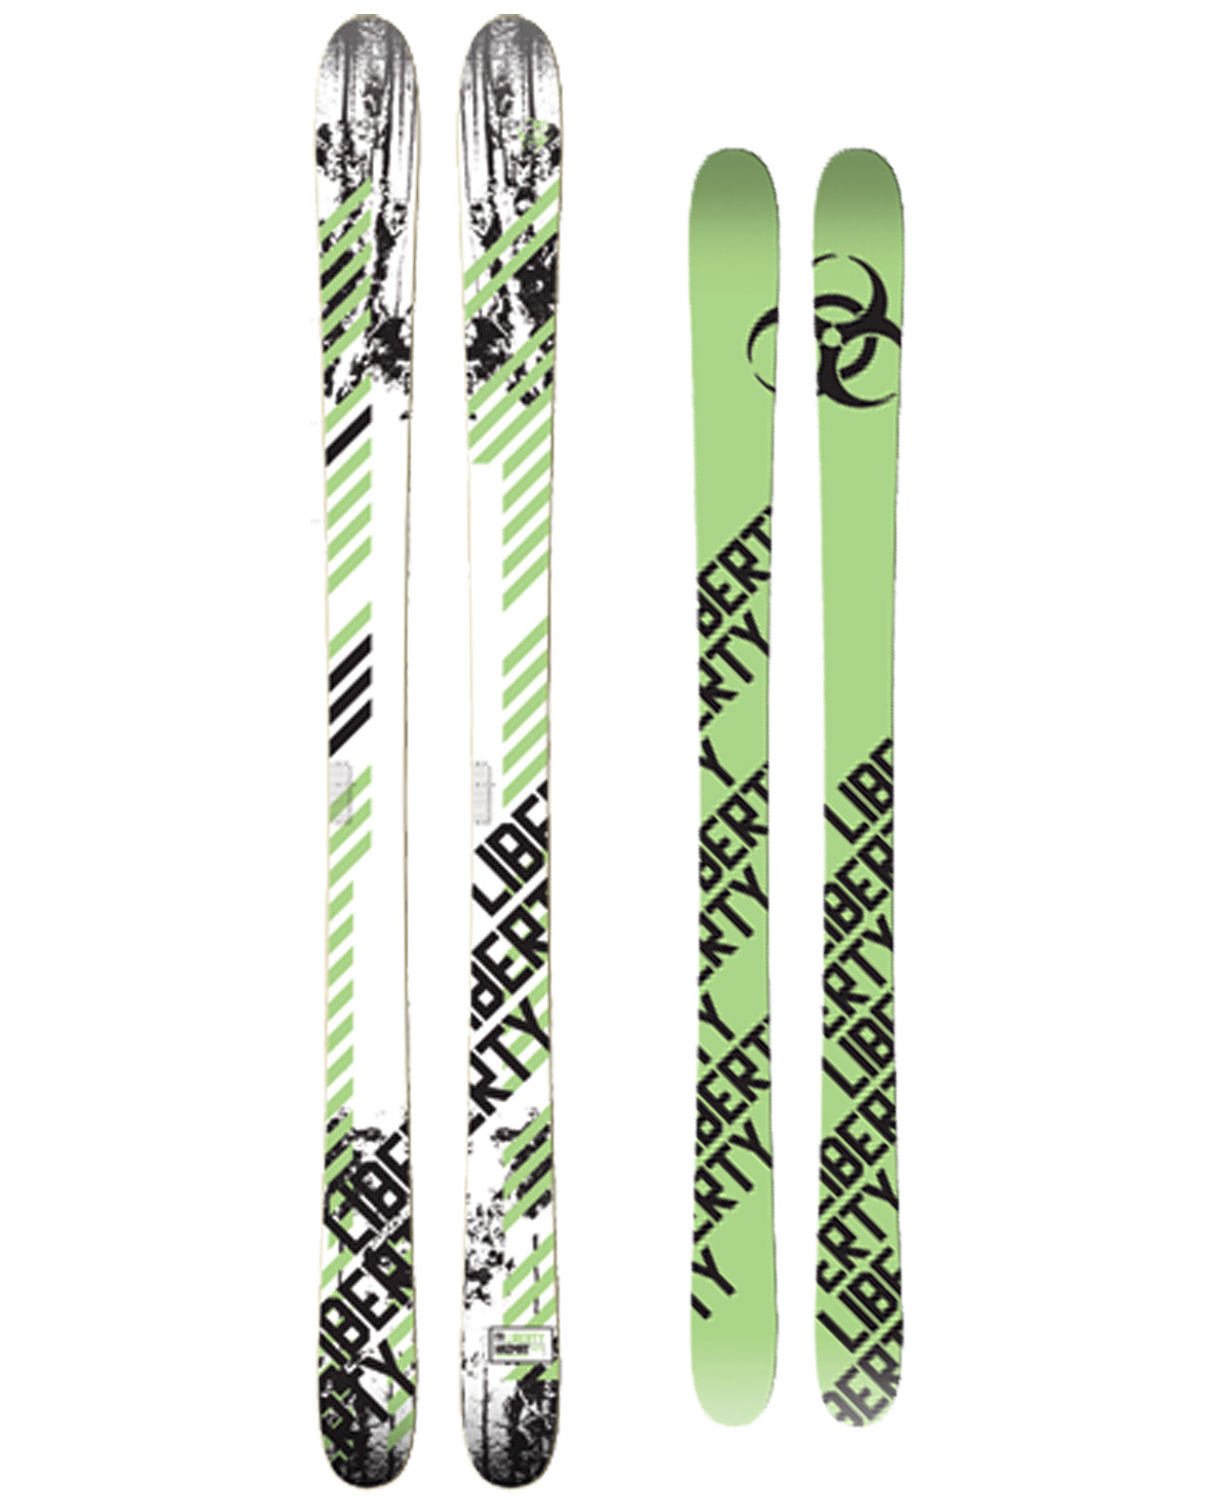 Ski The updated 2010 Hazmat is our most versatile ski and our everyday ride here in Colorado. Featuring UHMW sidewalls and a thicker edge profile, the smooth and energetic Hazmat is truly a one ski quiver. With a medium flex, bamboo laminate core, and a mid-fat footprint the Hazmat does everything well, from riding powder to park.Key Features of The Liberty Hazmat Skis 181: HRC 40 Edges - Slightly Lower hardness rating with a wider profile and larger anchors to dissipate heat and increase impact resistance Cab 4- Cab Forward Stance 78 Degree Sidewall FRP - Fiber Reinforced Polymer Bamboo - Laminated bamboo gives tremendous rebound and energy while being environmentally friendly UHMW Sidewalls - Rugged and repairable sidewall material with a layer of rubber above and below for smooth riding and durability. UHMW is tougher than ABS and can be repaired if you manage to gouge a hole in it P-Tex 2000 - Fast and durable sintered base from the industry leader ISO - New co-extruded polyamide material is the best sublimated topsheet available Liberty Core - Laminated Bamboo and Poplar core.We laminate 3 bamboo stringers within the poplar core to create a tough and light core that has incredible energy return and snow feel.This core will flex enough to ollie or butter with ease, yet has enough backbone to stomp landings or ride at high speed. - $430.95